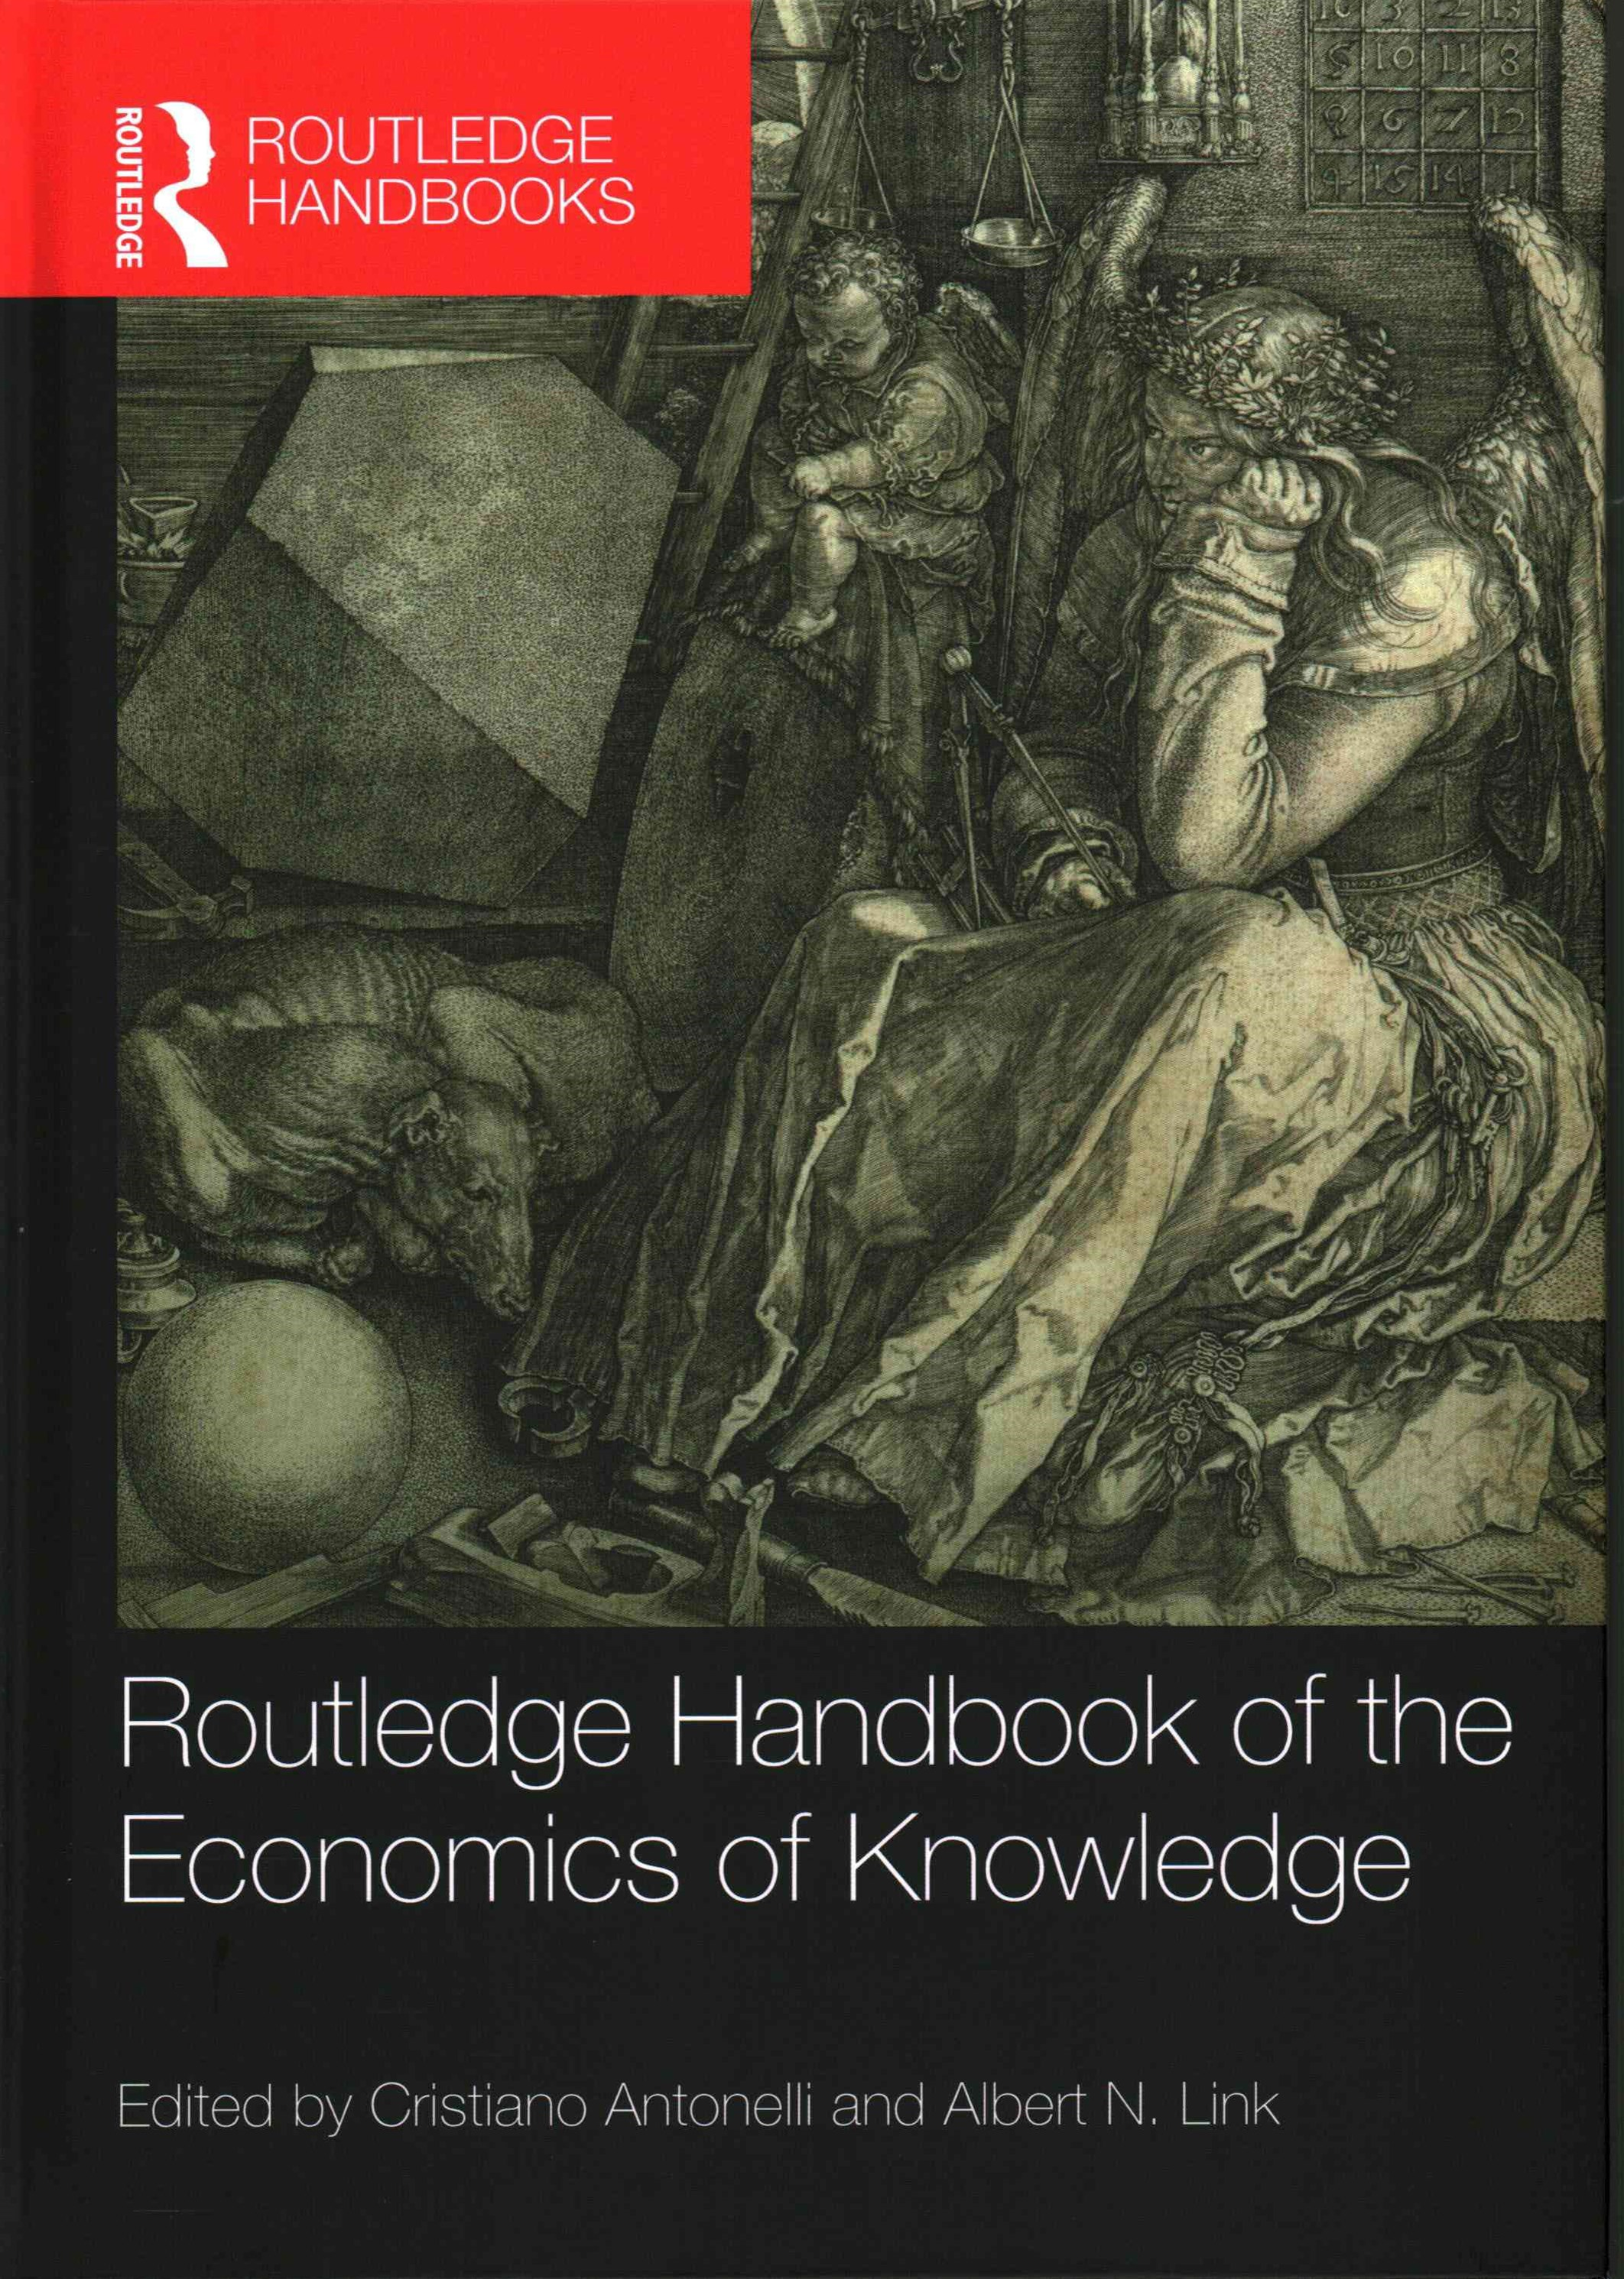 Routledge Handbook of the Economics of Knowledge